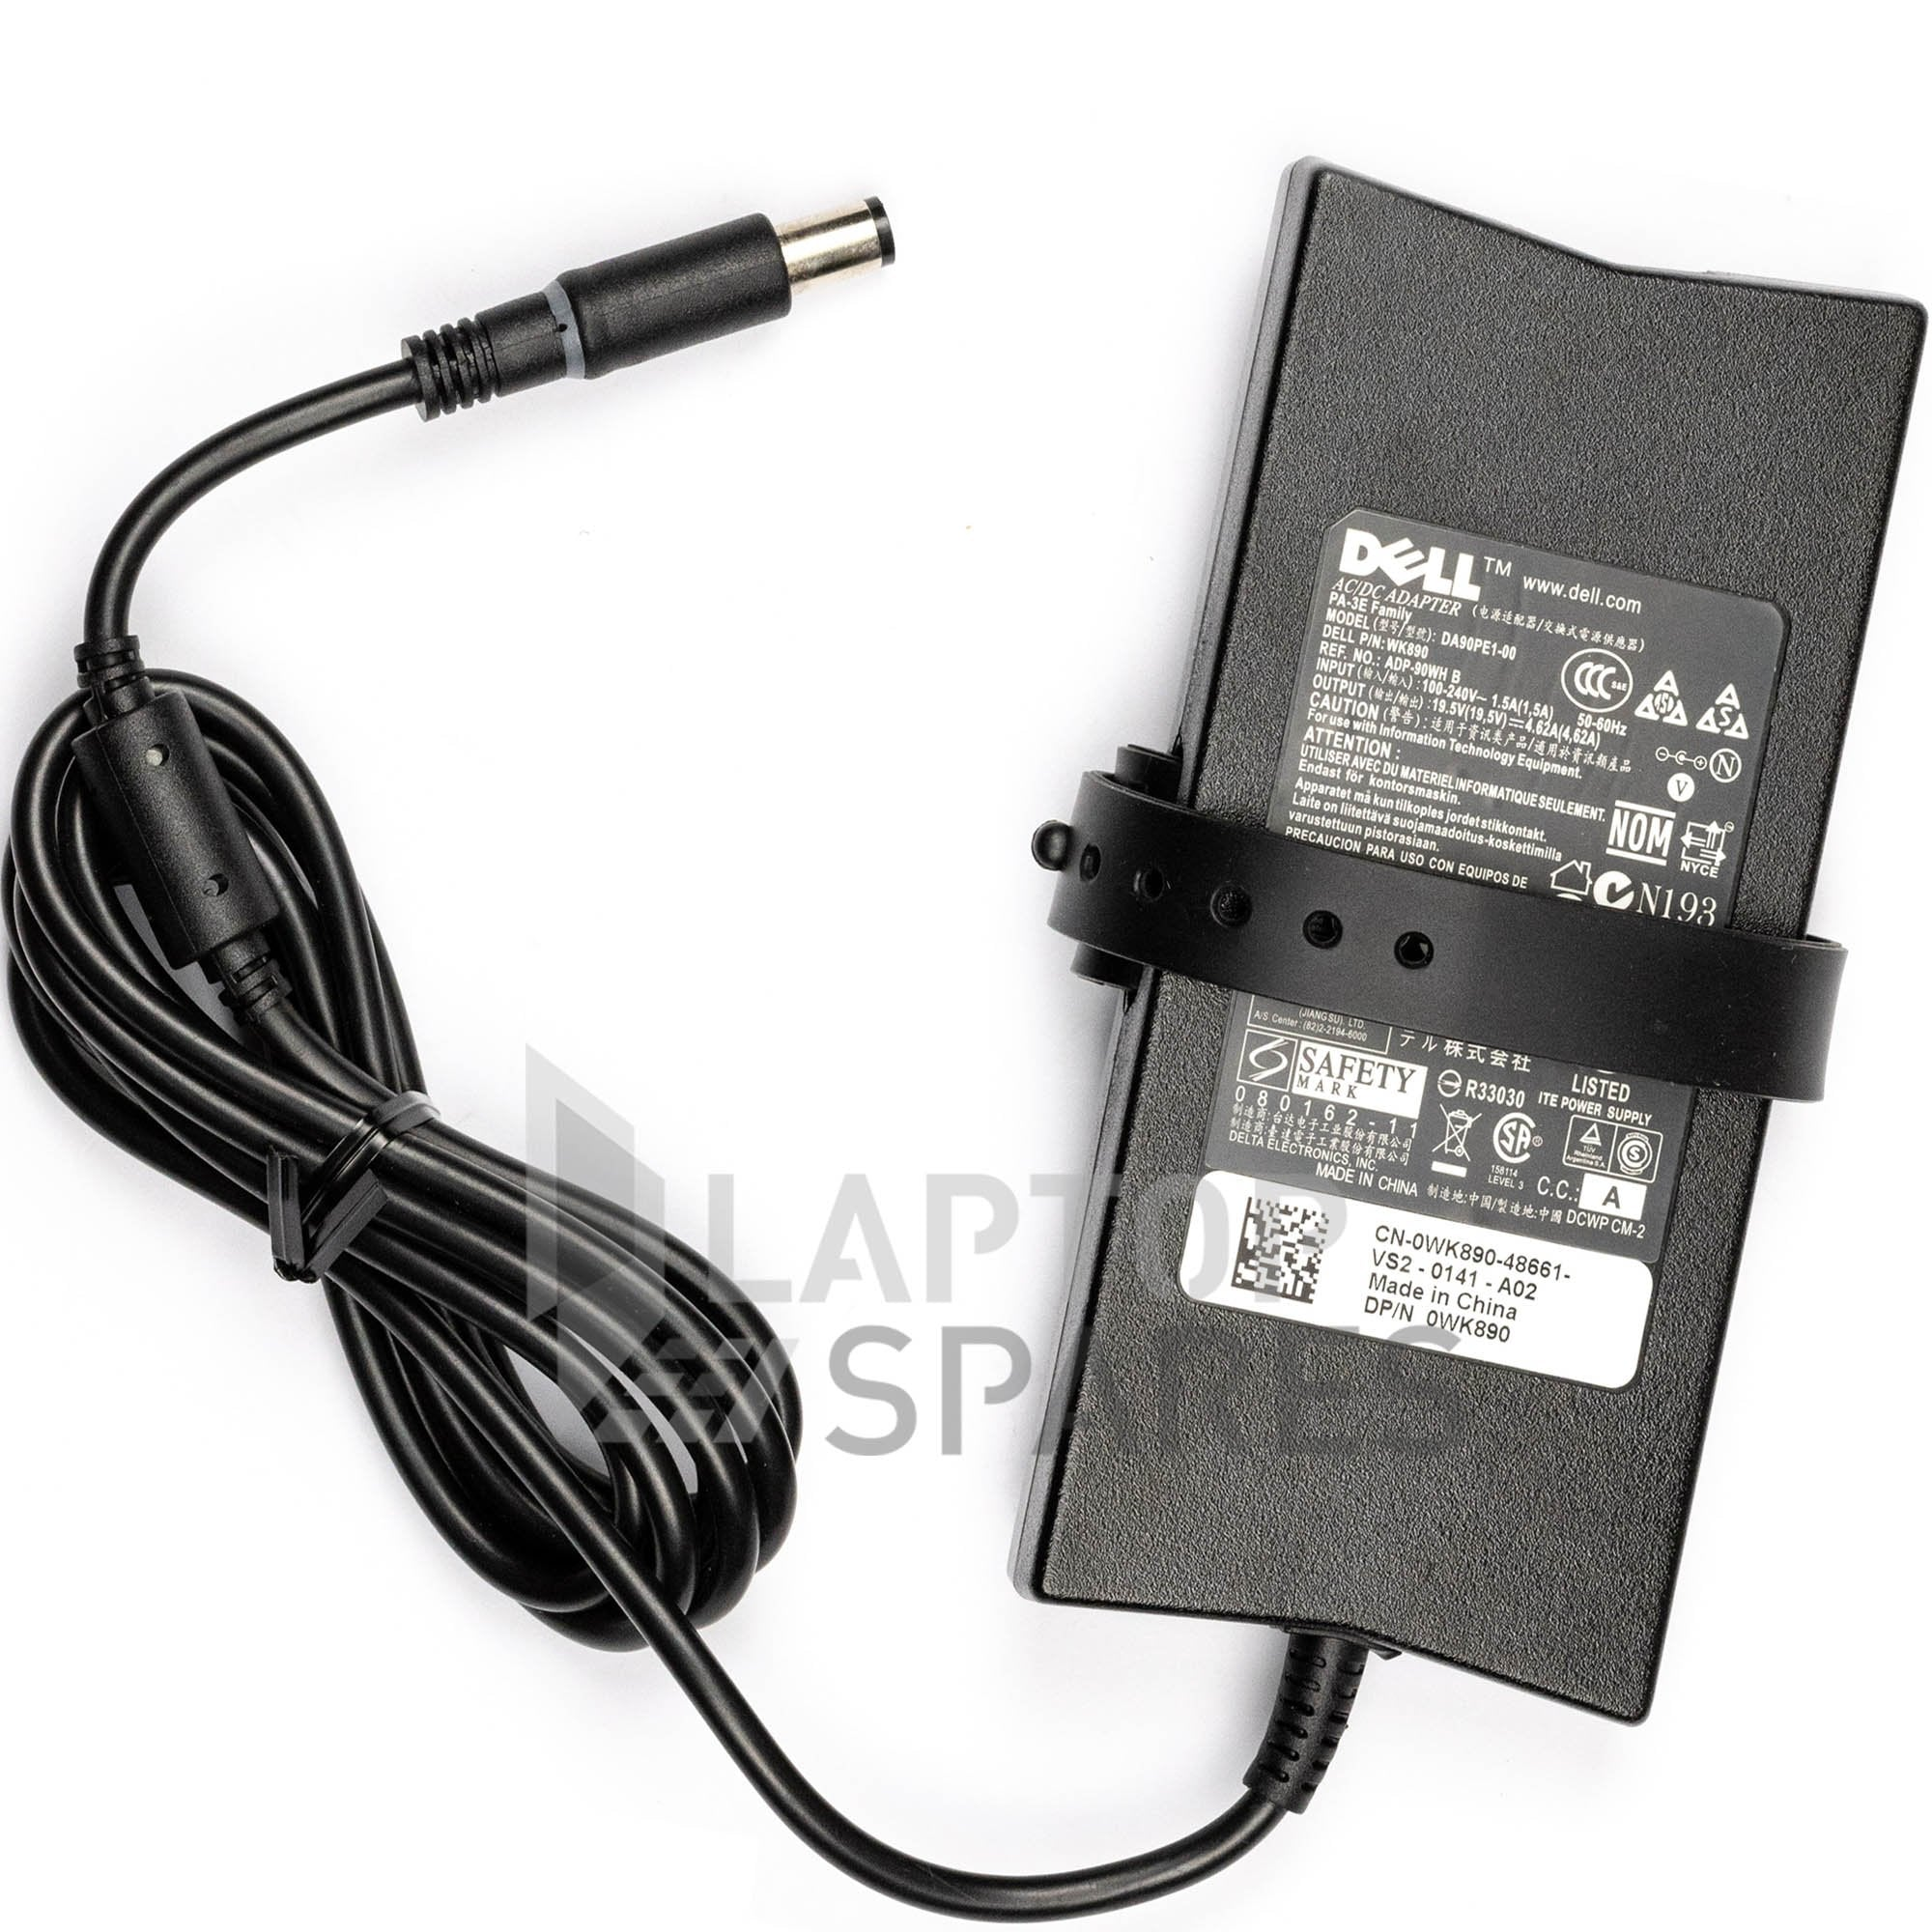 Dell XPS M1530 M1710 Laptop Slim AC Adapter Charger